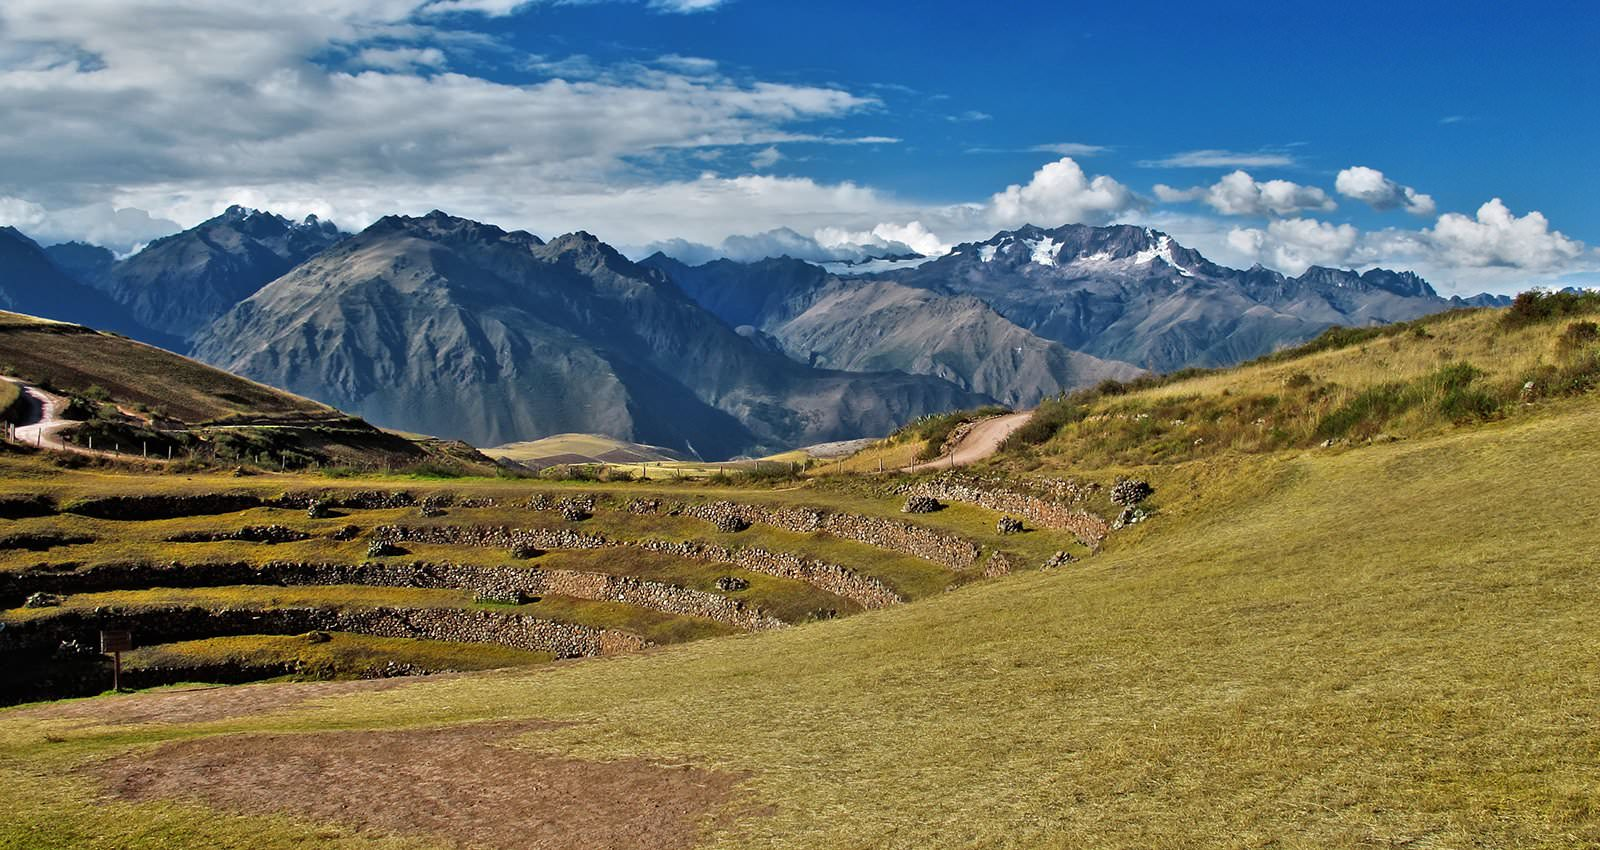 Moray Peru - Andean Spirit Destinations